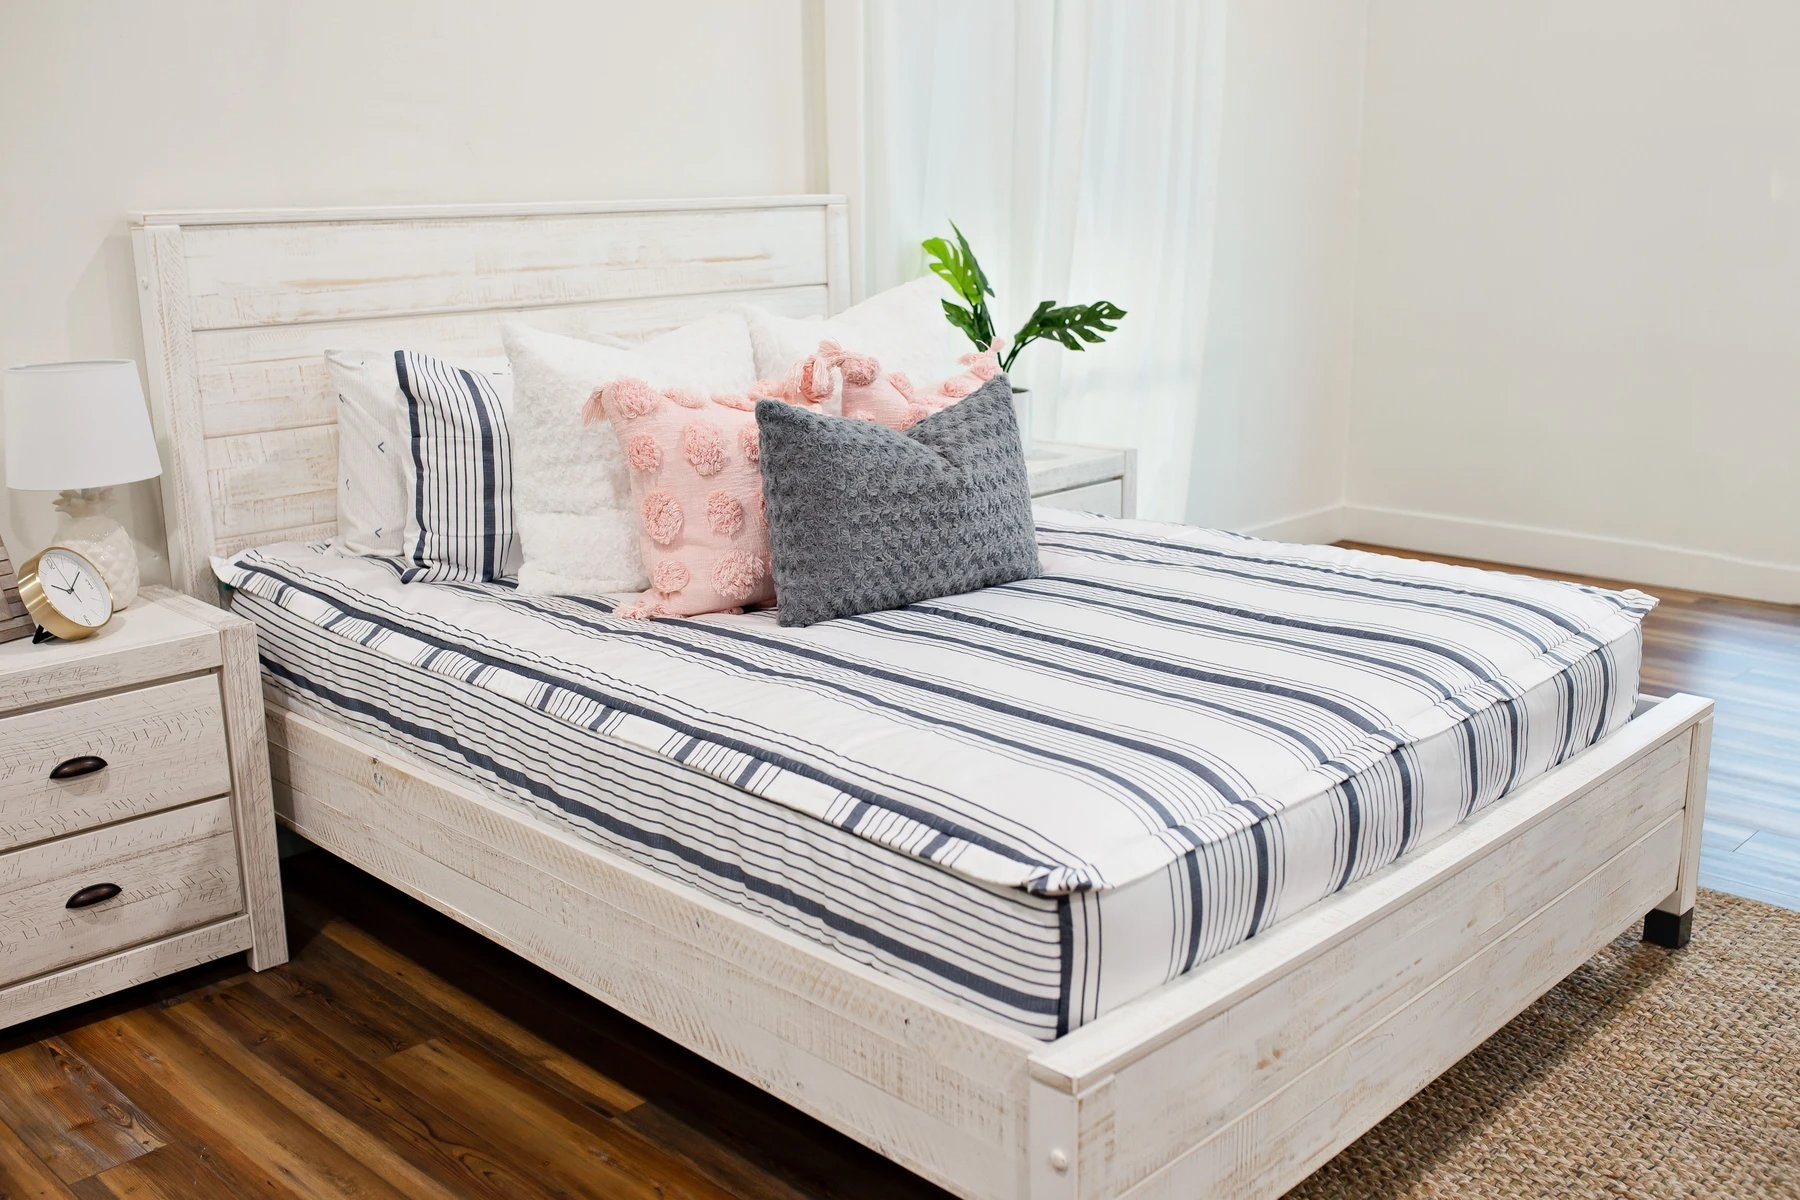 Beddy's (Bed Ease) Sheets